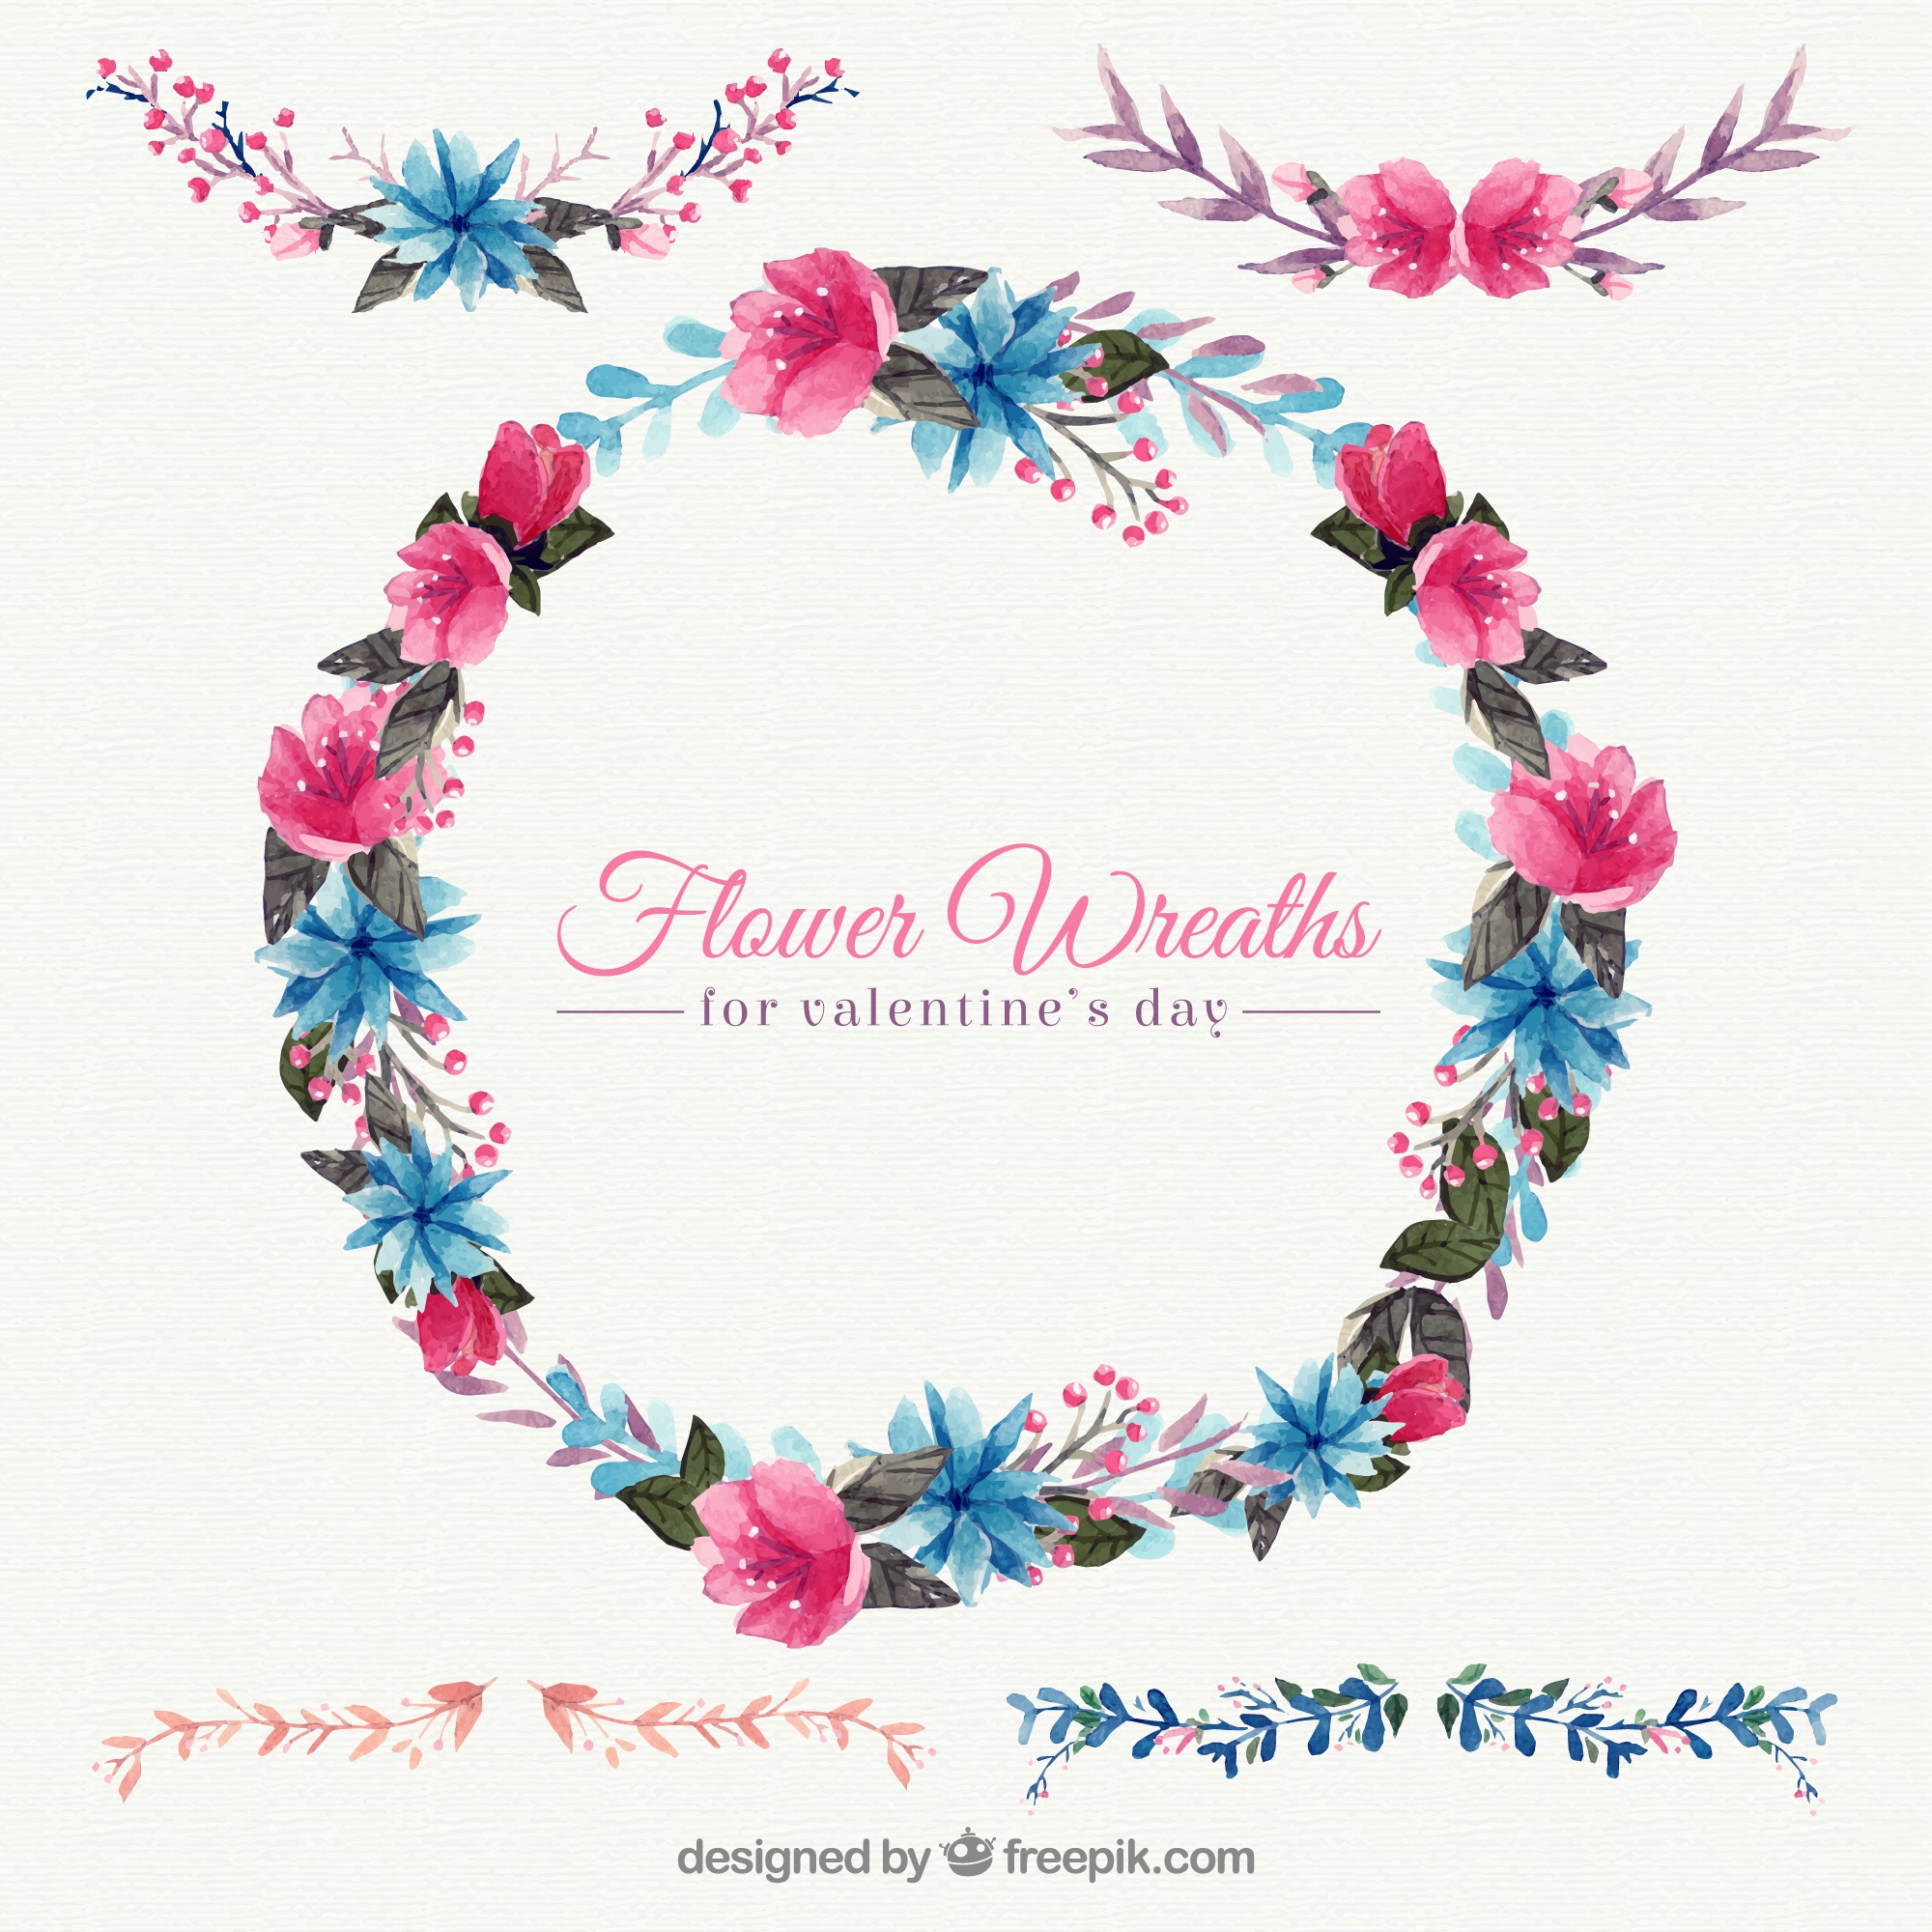 Decorative watercolor floral wreath